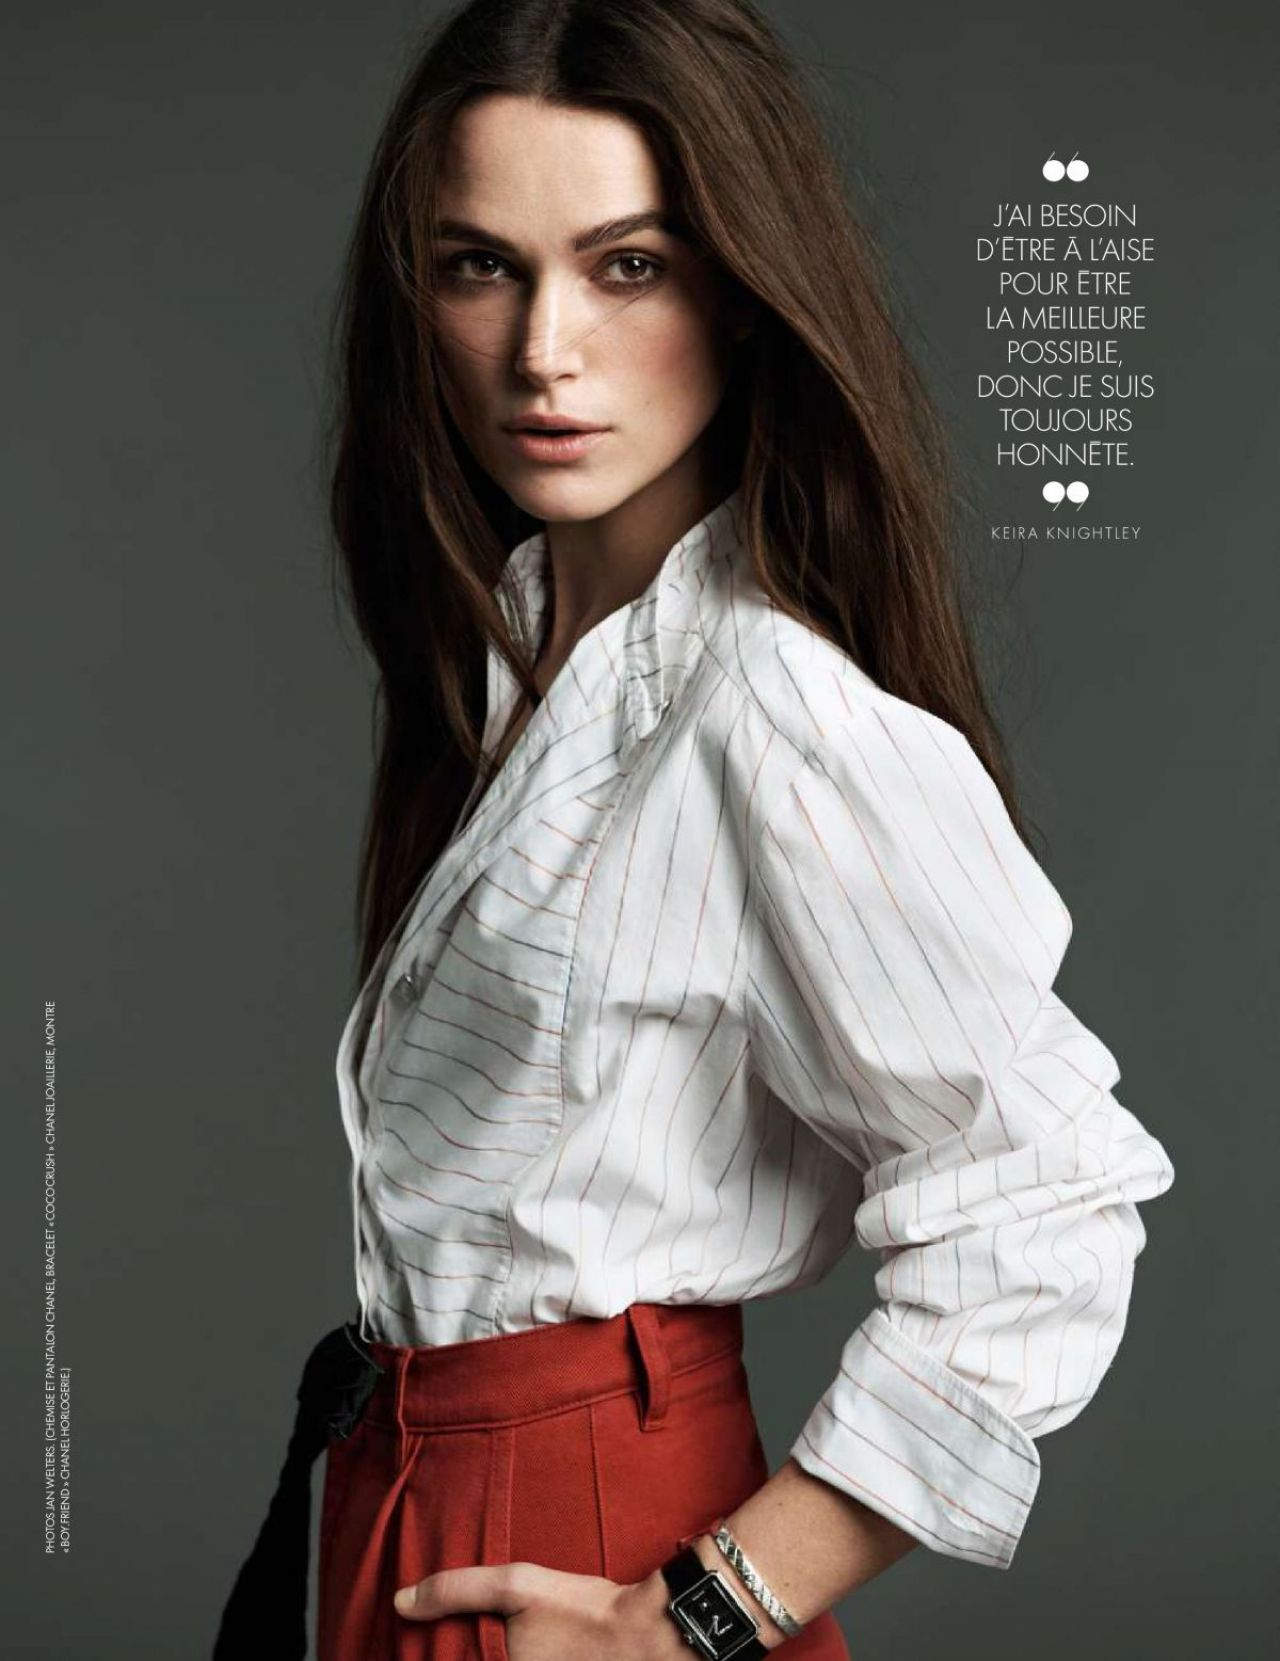 Keira Knightley Elle Magazine France March 2018